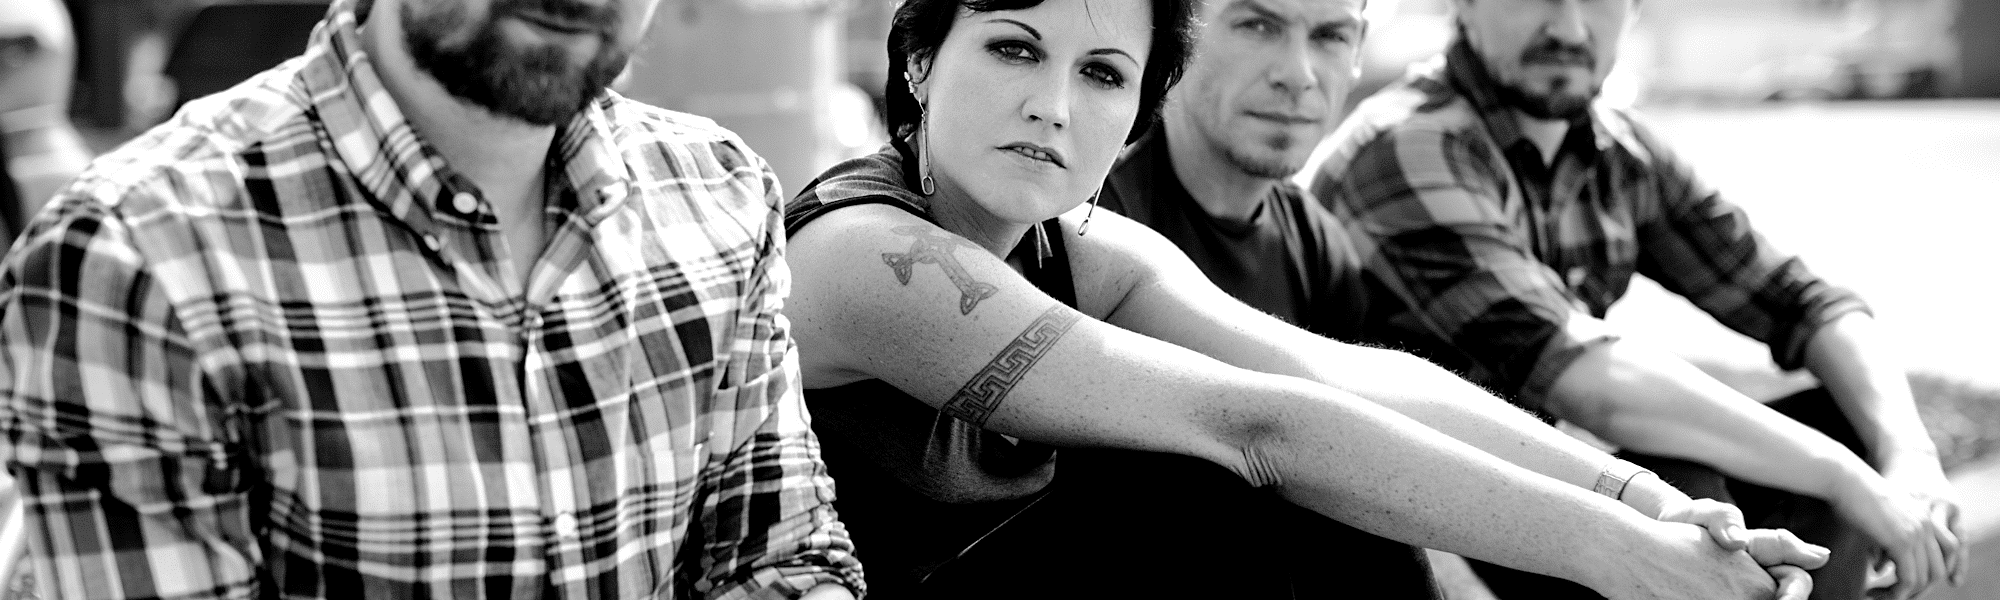 Le groupe Cranberries